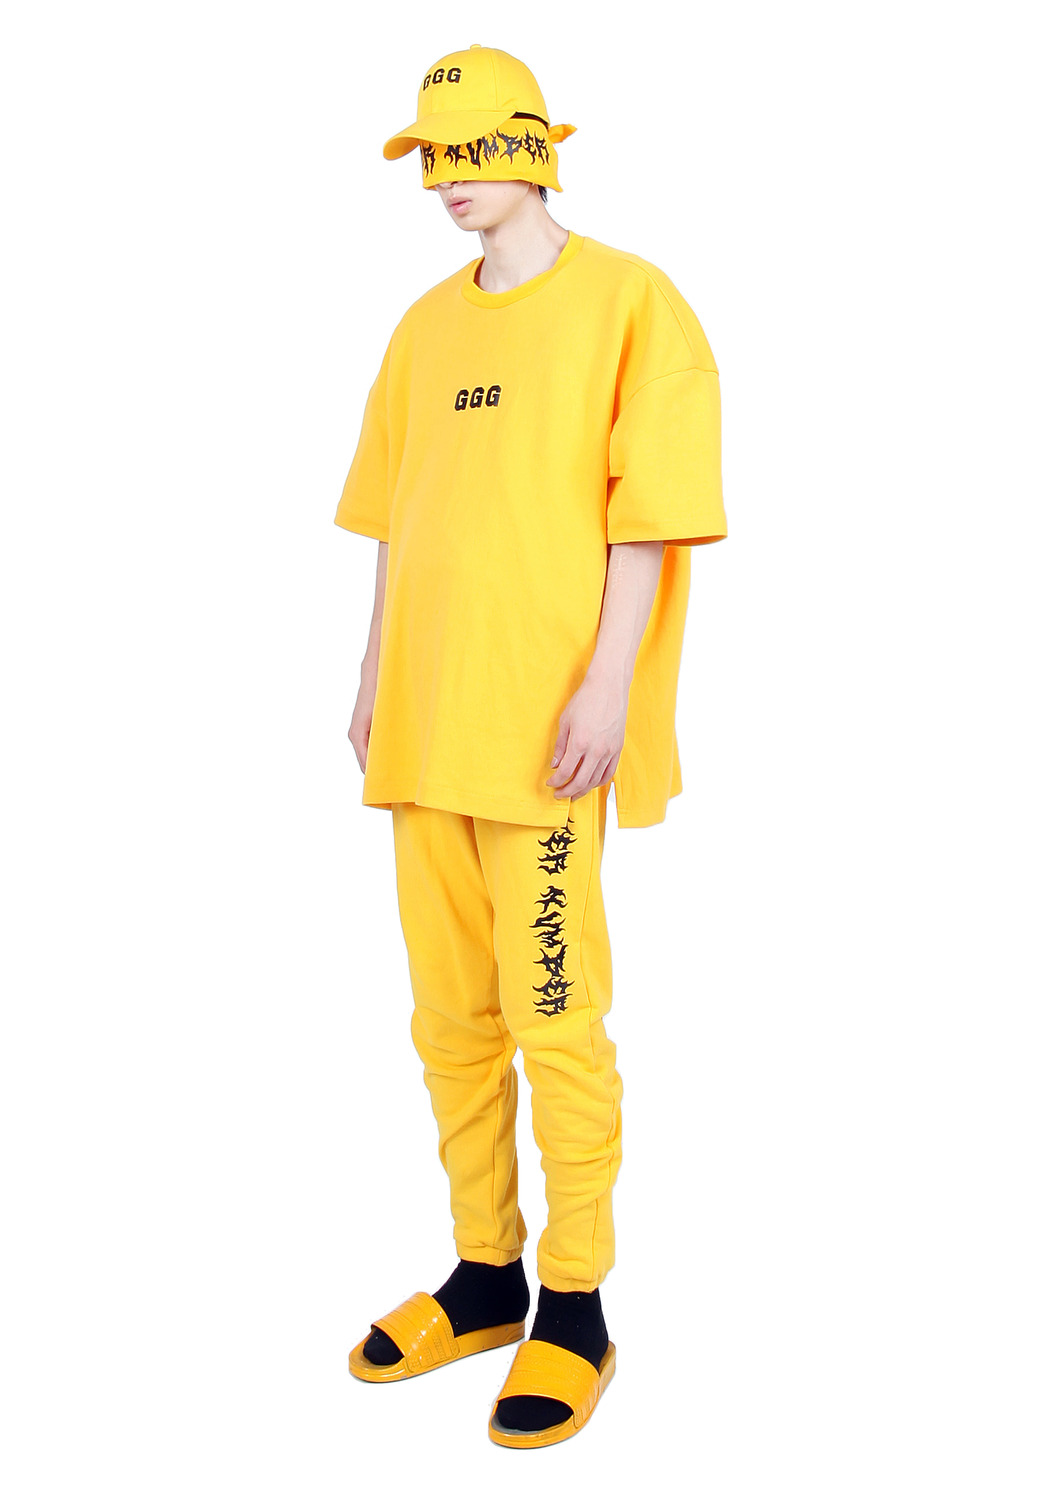 YELLOW GGG T-SHIRTS